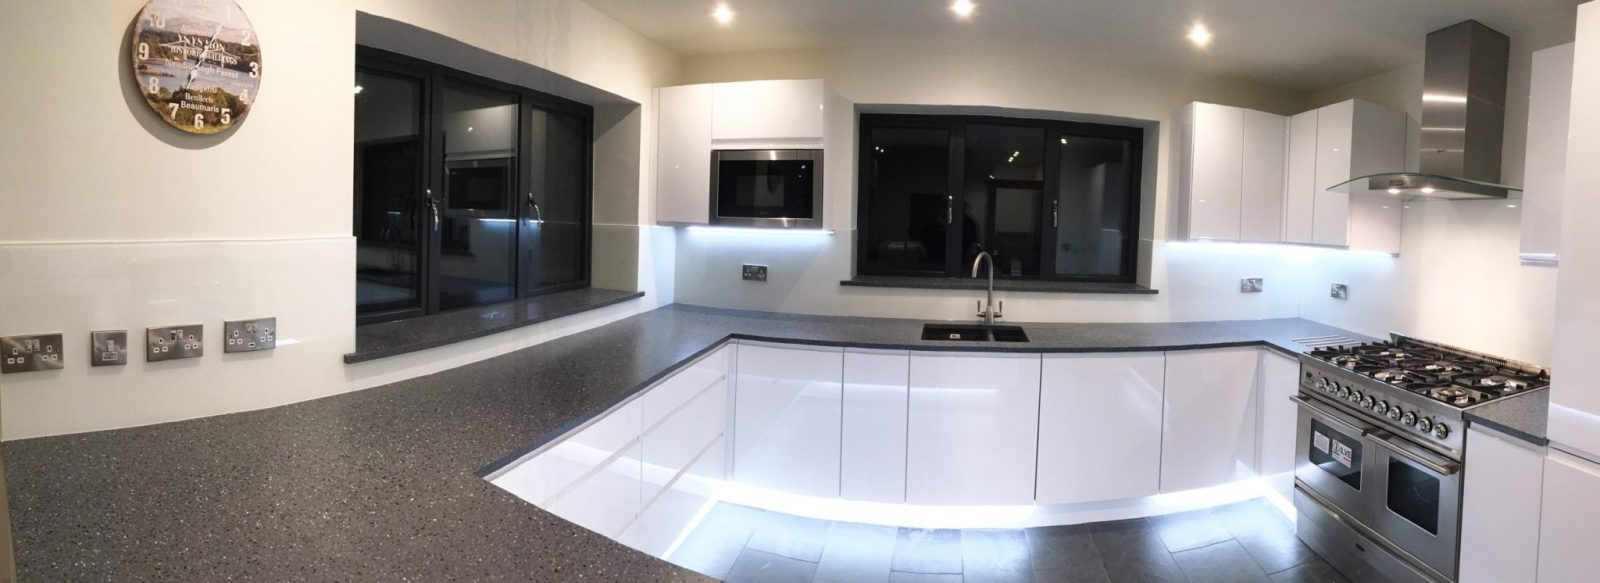 Kitchen Glass Splashback Coloured in Farrow and Ball Wimborne White Fitted in Holmes Chapel Cheshire